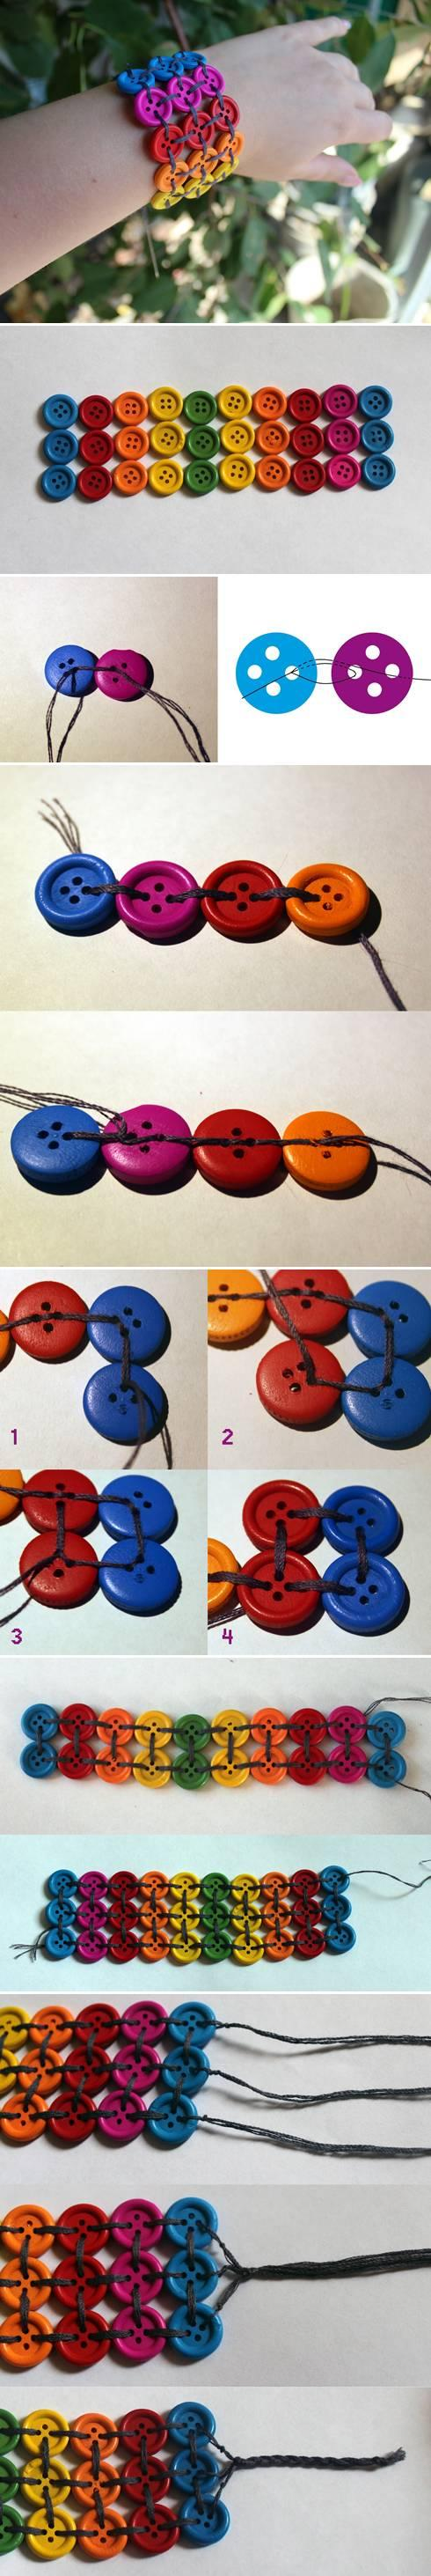 DIY Wide Buttons Bracelet DIY Projects | UsefulDIY.com